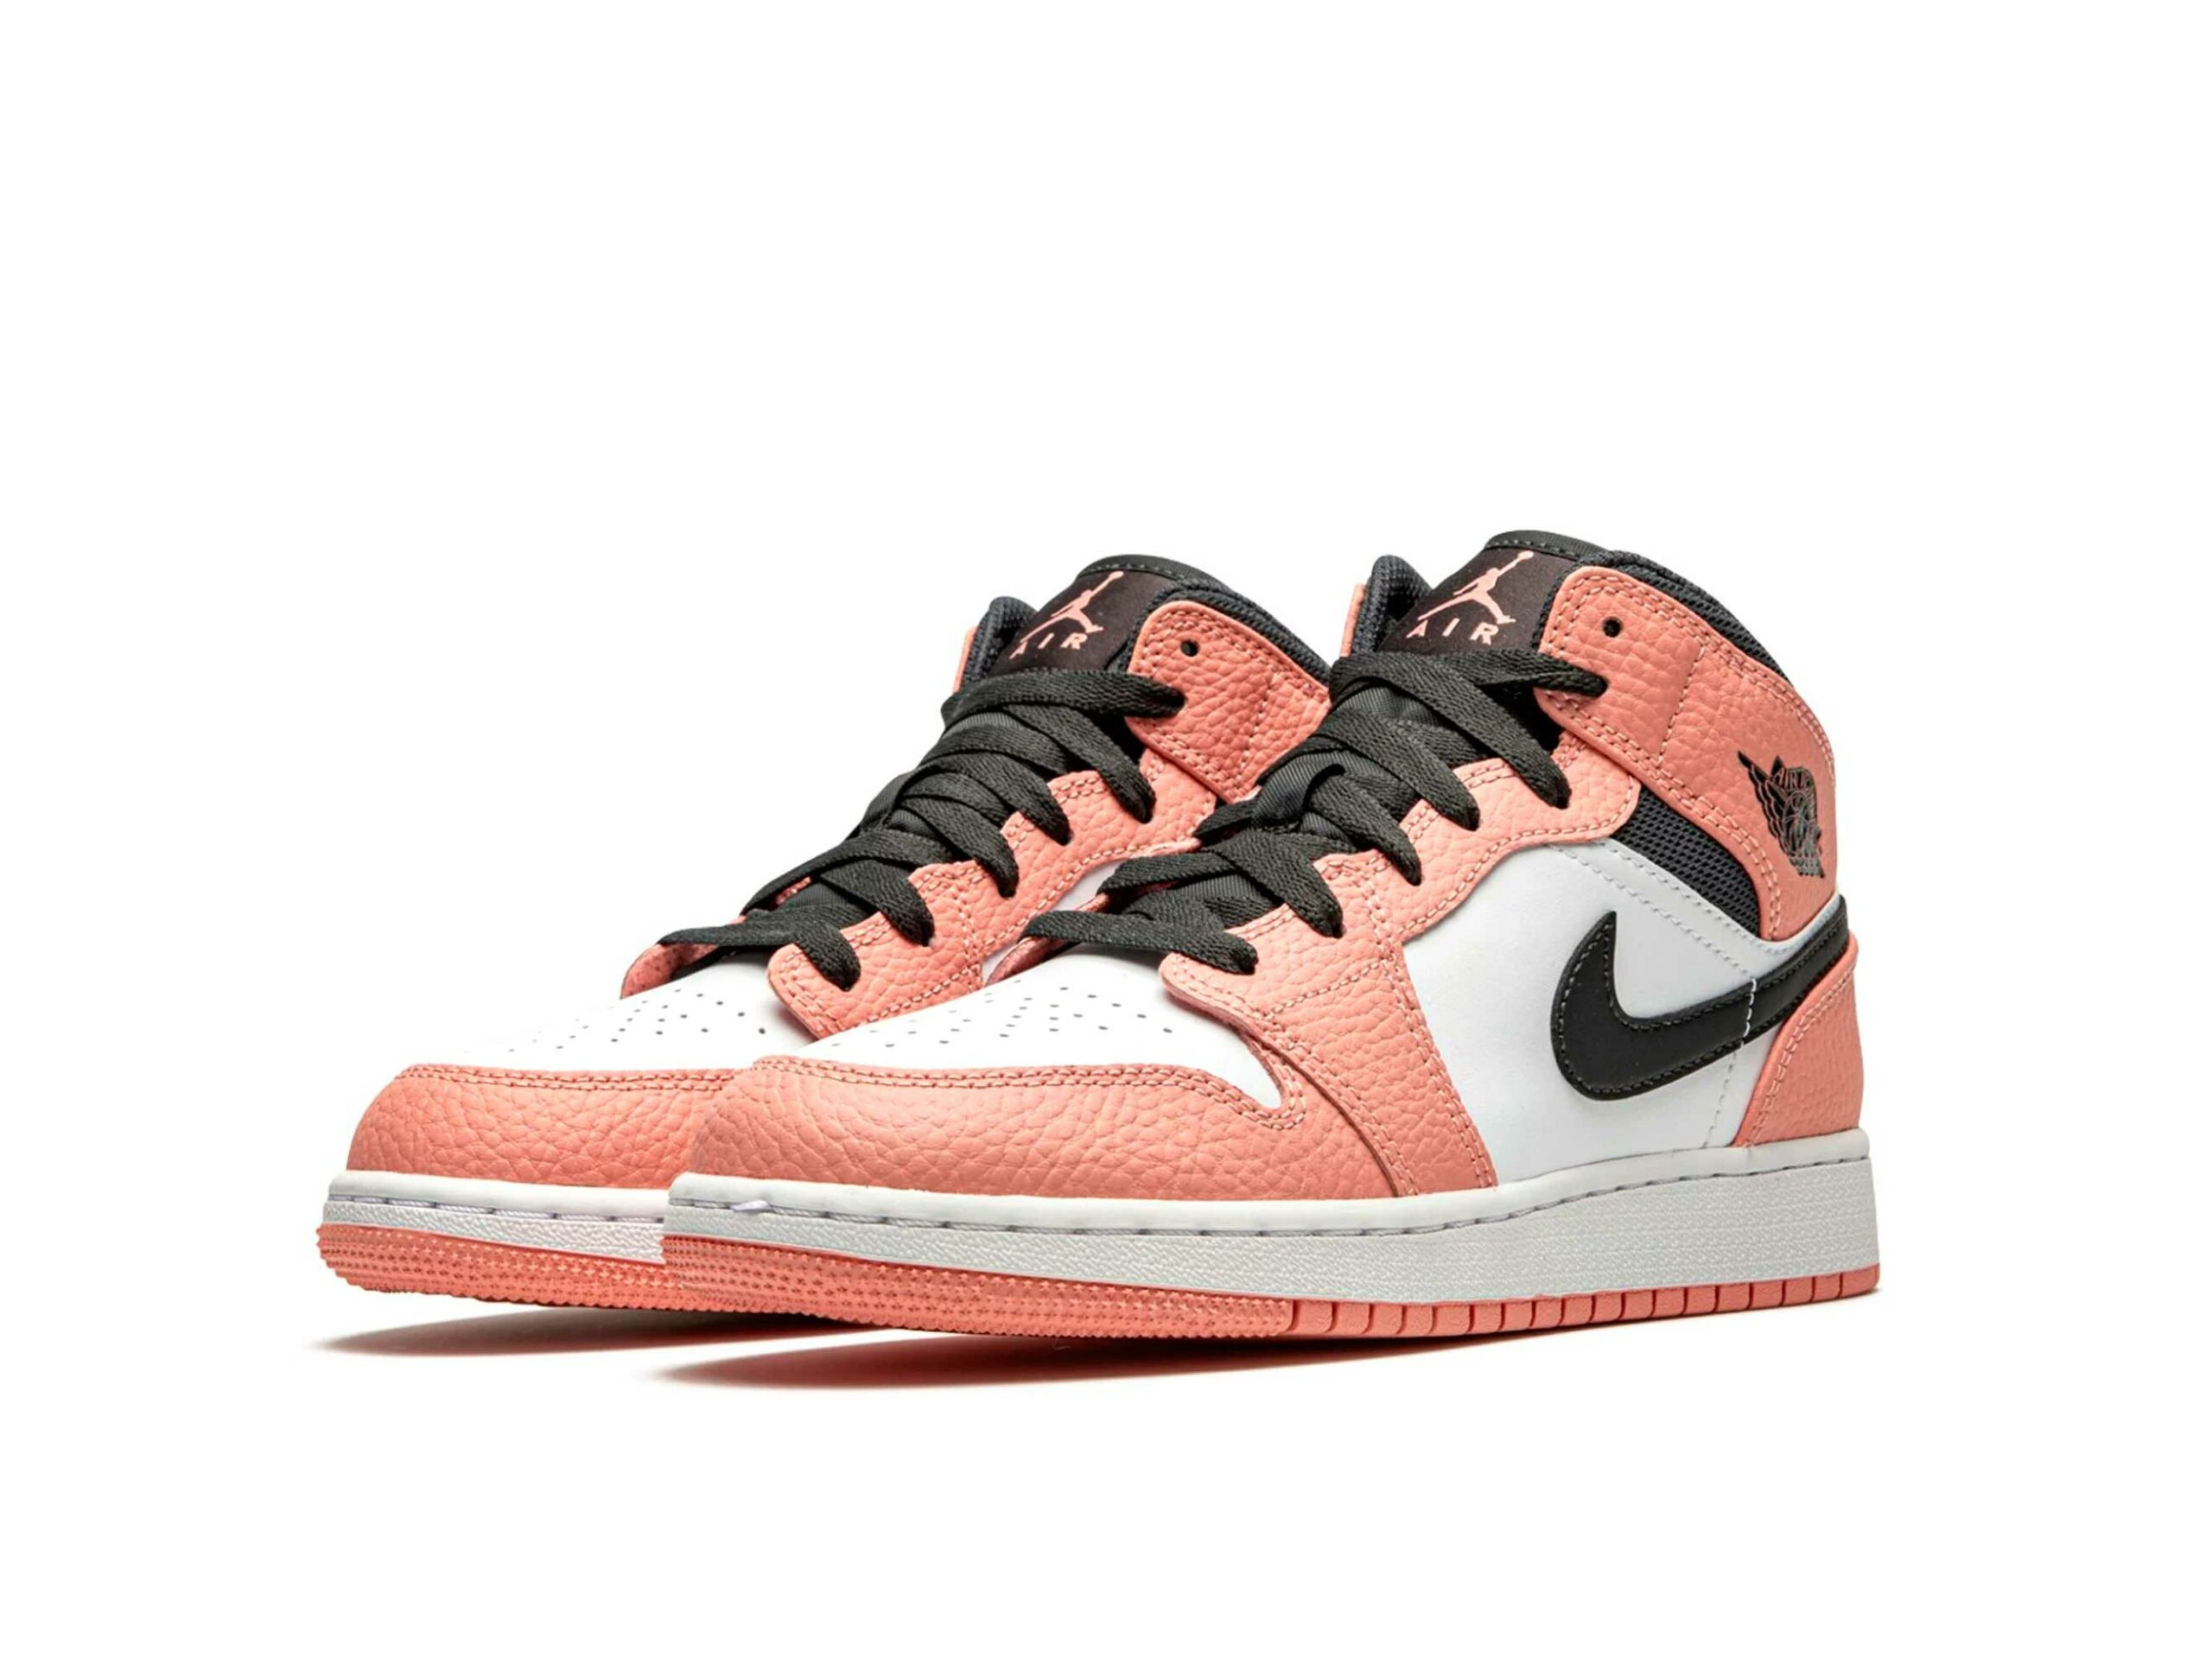 nike air jordan 1 mid GS pink quartz 555112_603 купить